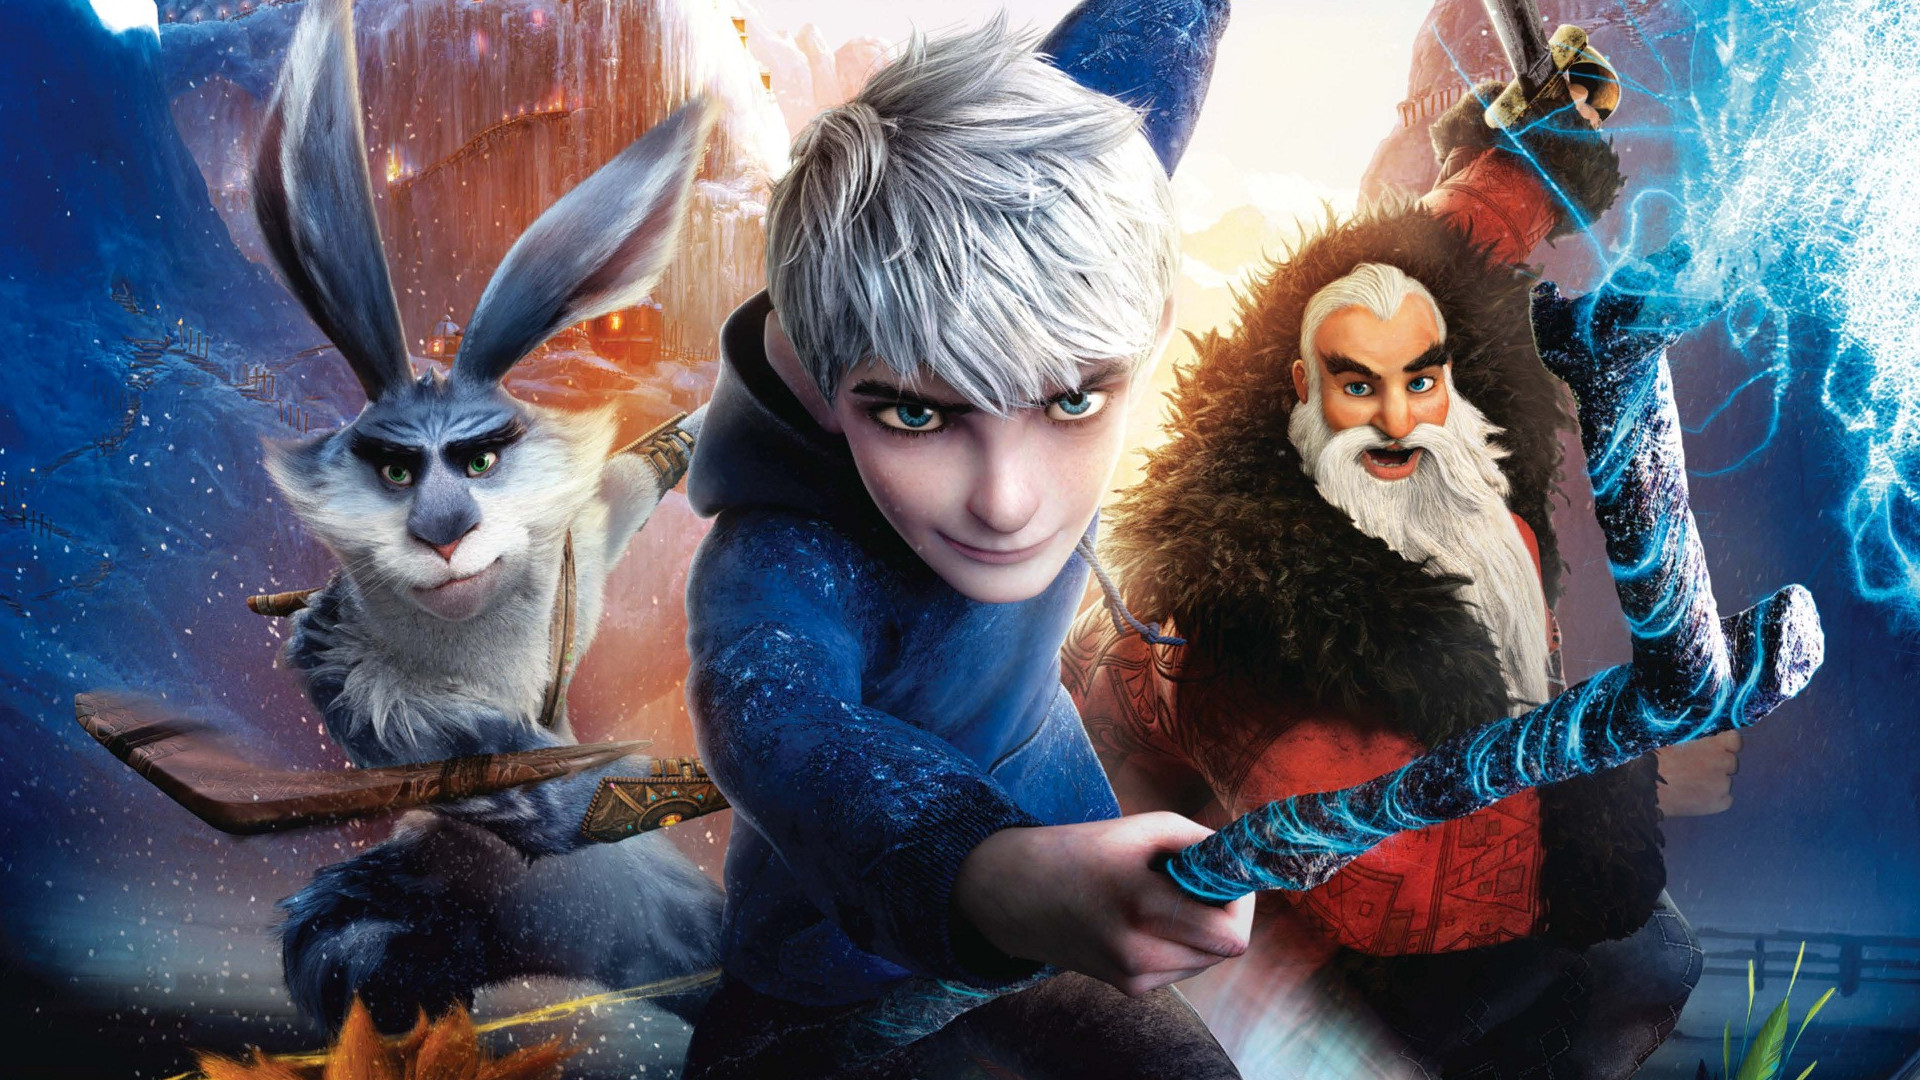 1920x1080 - Rise Of The Guardians Wallpapers 16